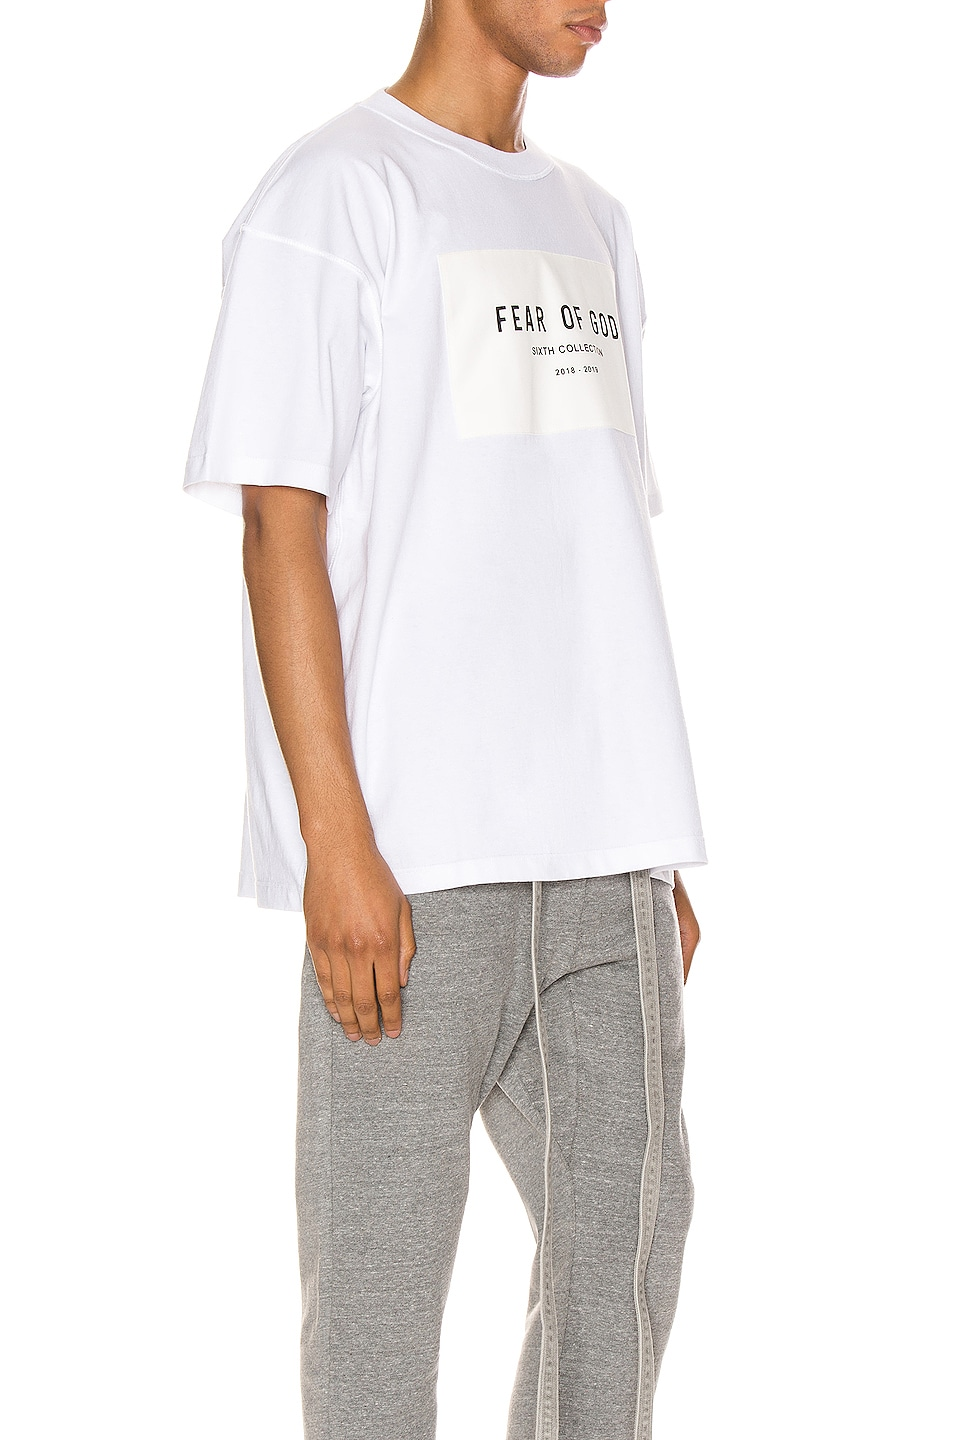 Image 2 of Fear of God 6th Collection Tee in White